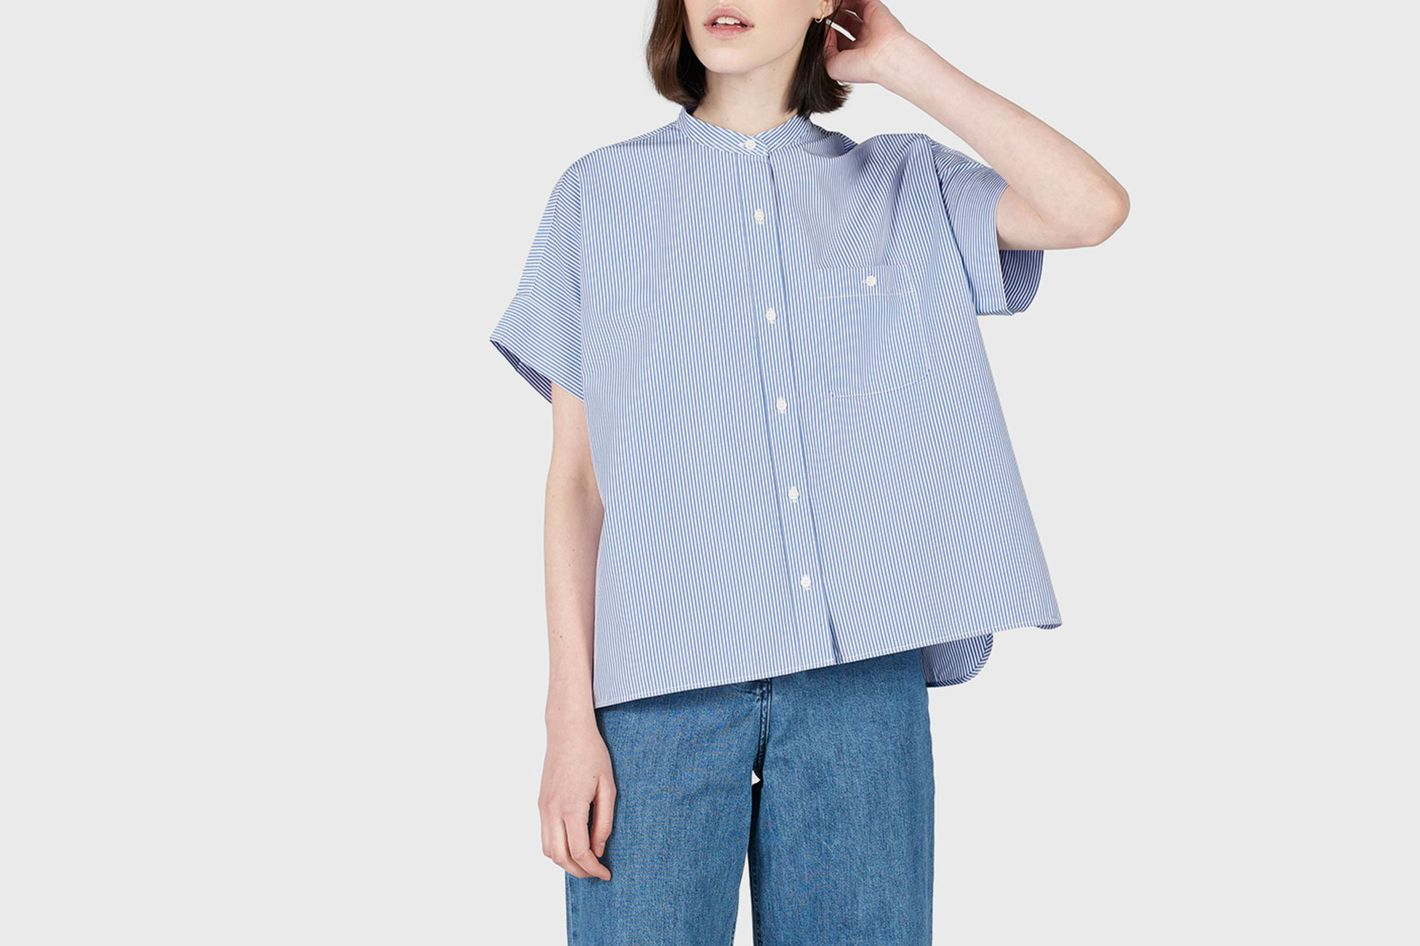 Everlane Cotton Poplin Collarless Short-Sleeve Square Shirt